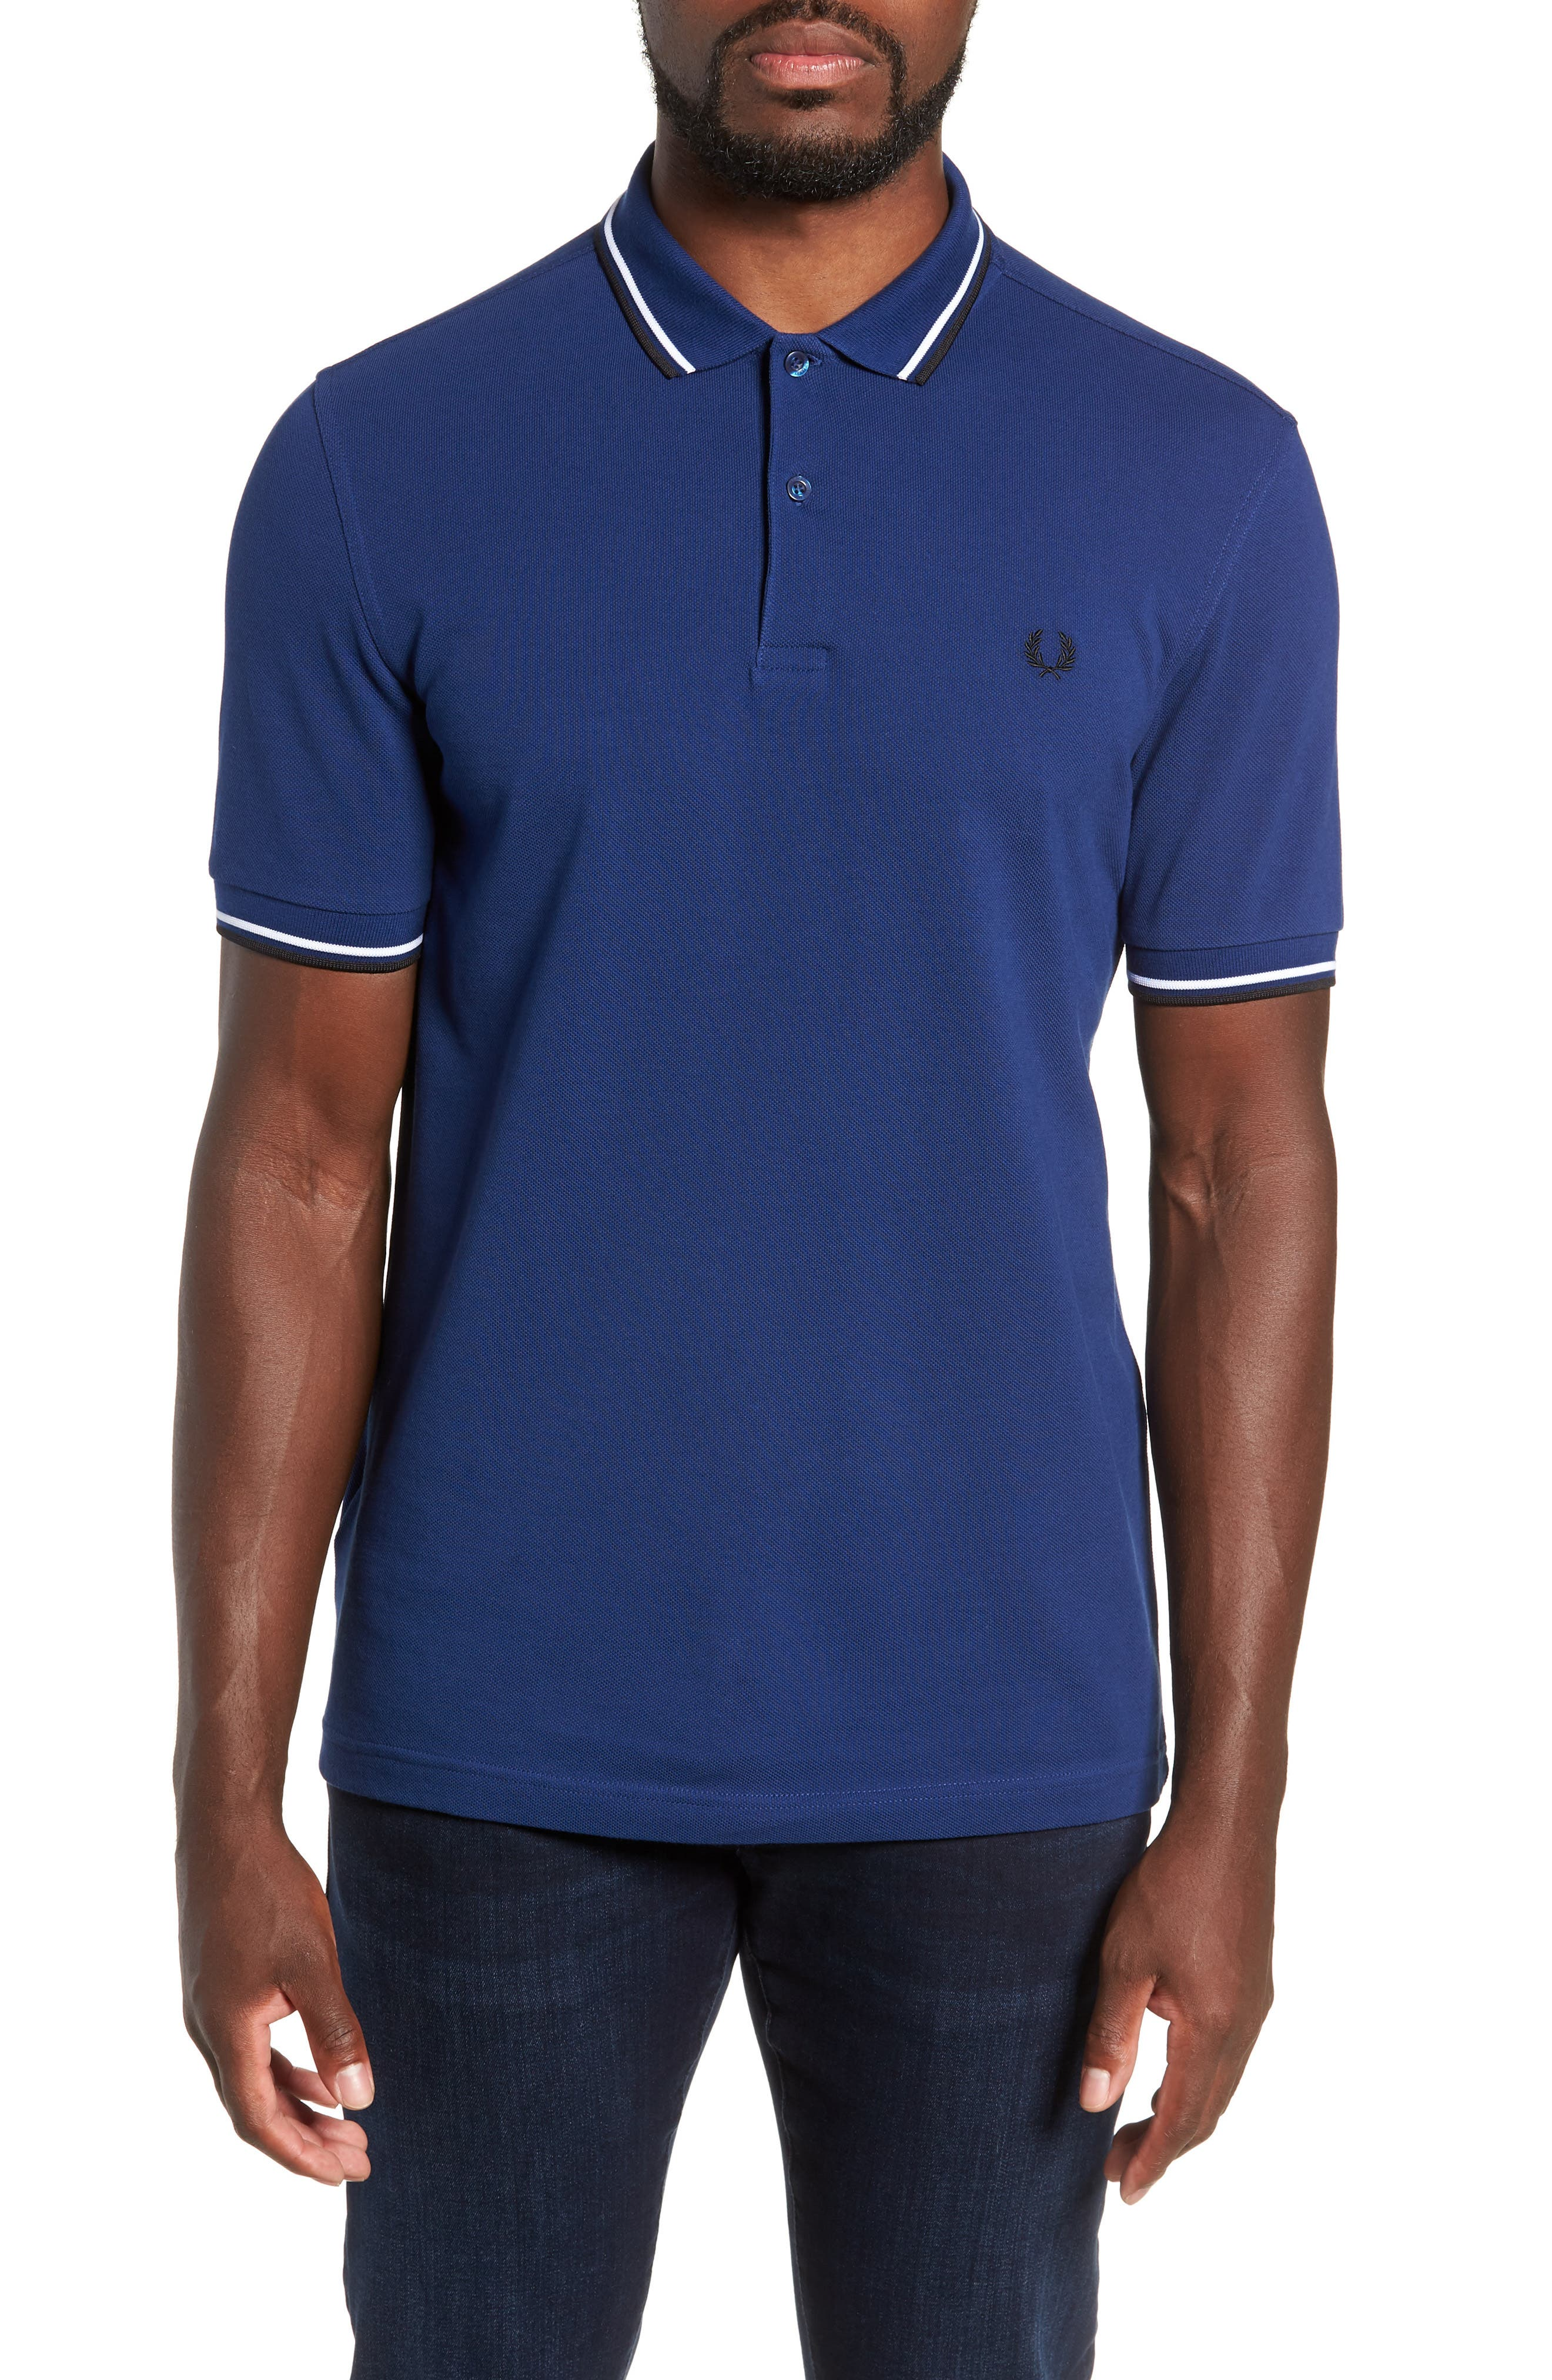 Extra Trim Fit Twin Tipped Piqué Polo,                         Main,                         color, MEDIEVAL BLUE / WHITE / BLACK